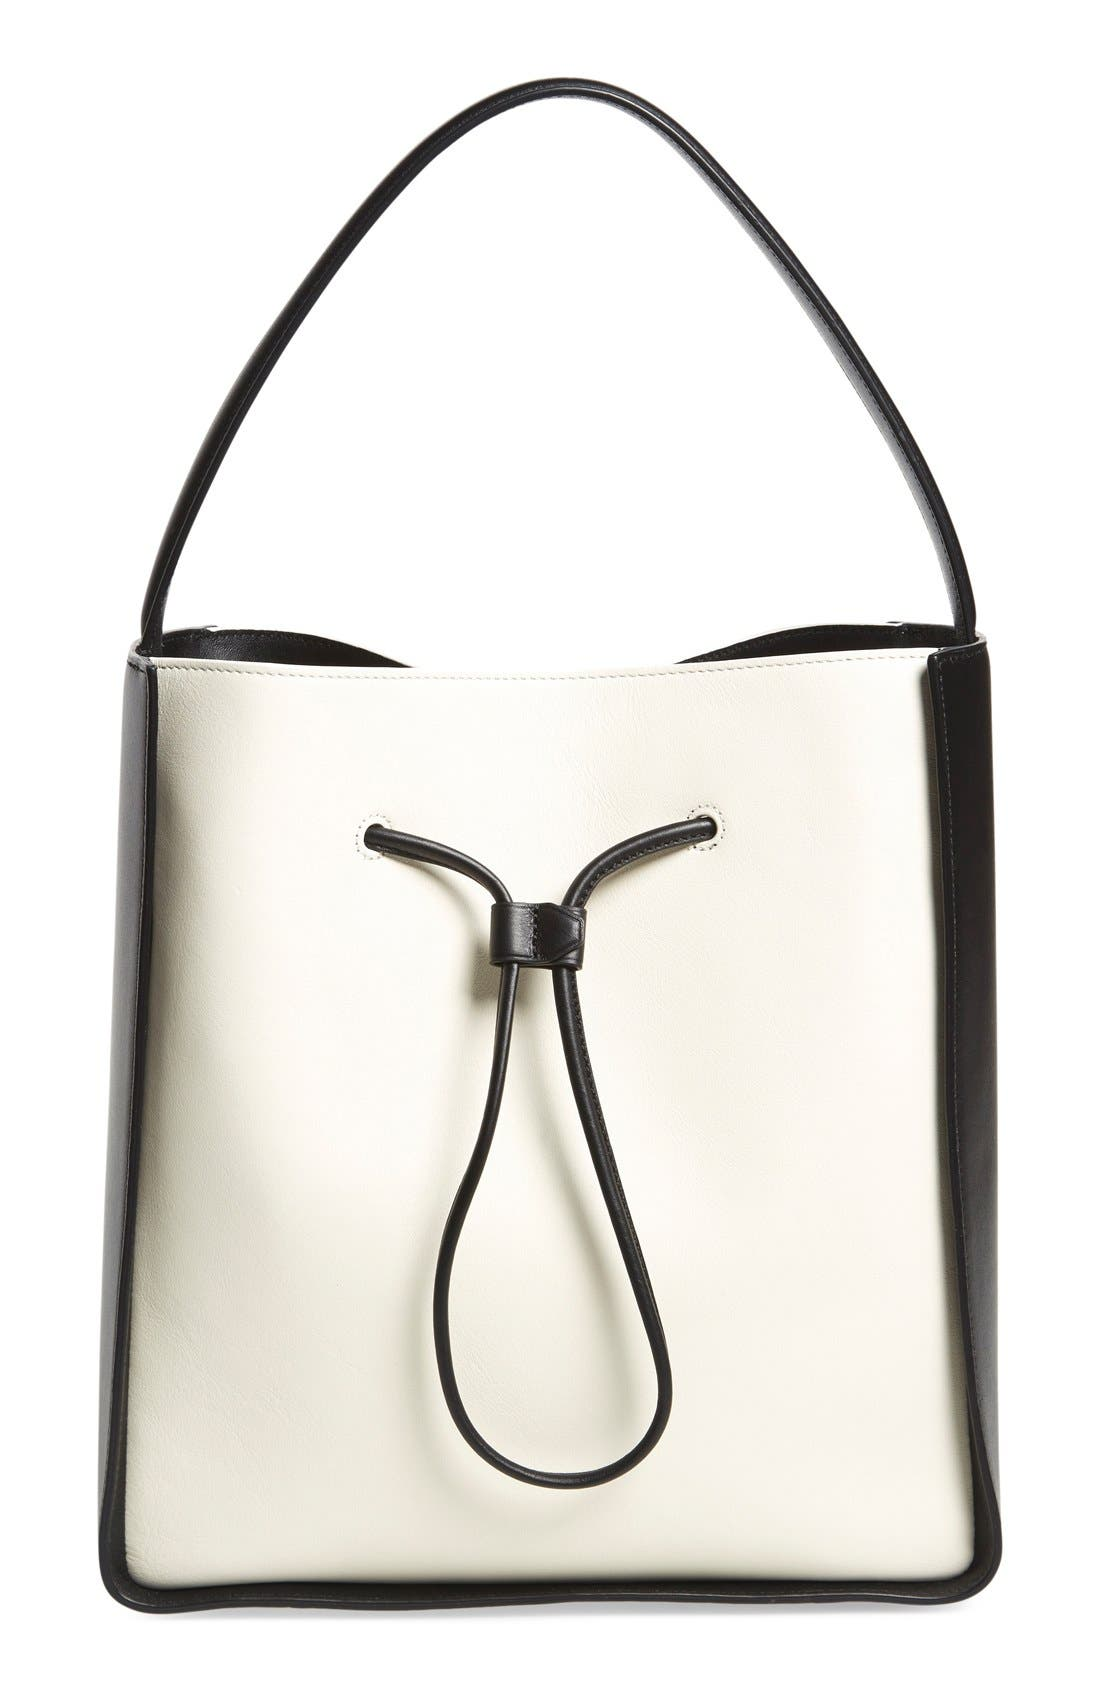 Main Image - 3.1 Phillip Lim 'Large Soleil' Colorblock Bucket Bag